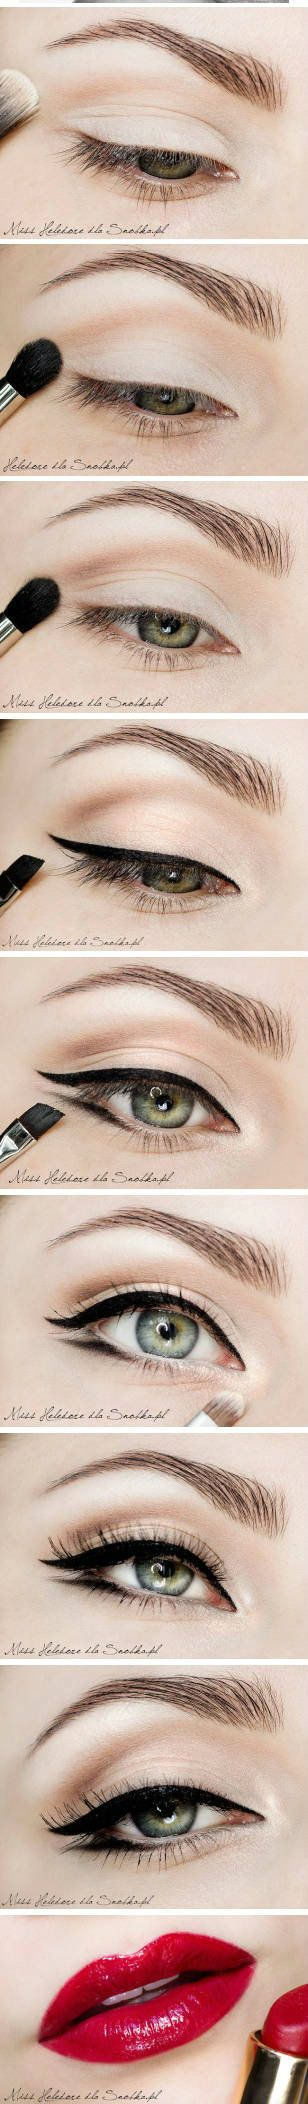 You, Mary, Violet, Ruth should know how to do wings on your eyes :) 1930's makeup look